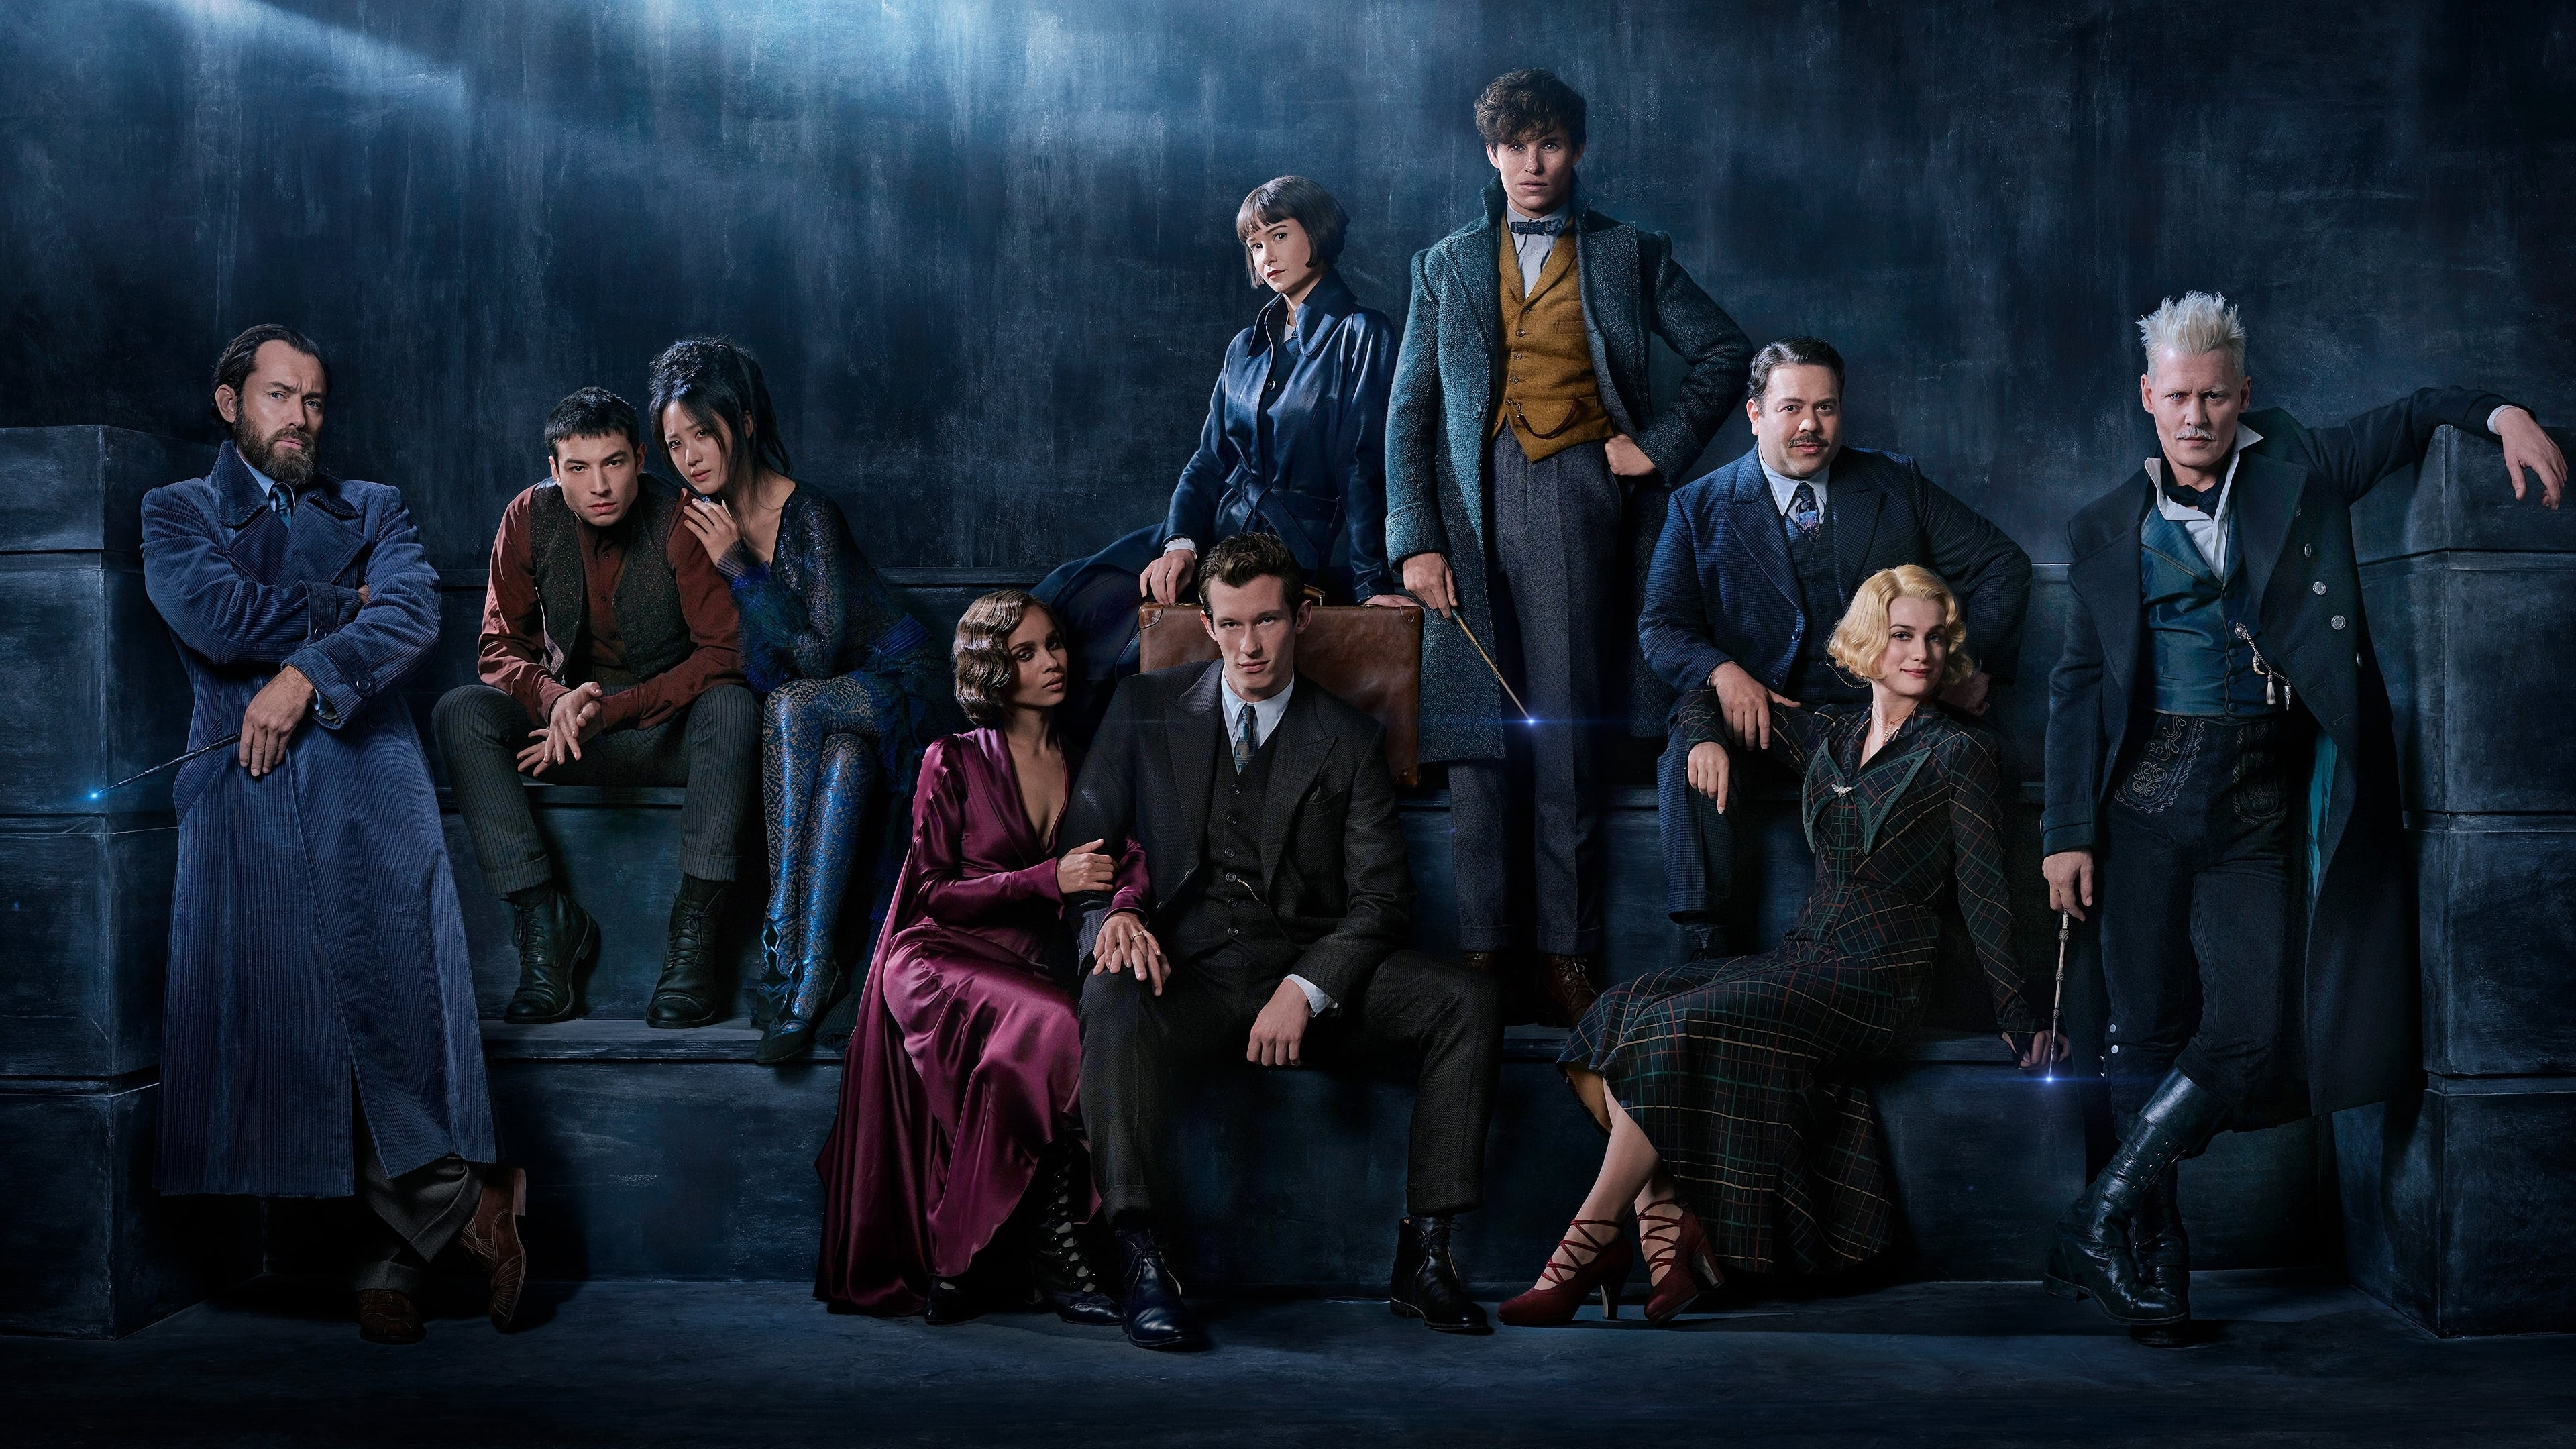 fantastic beasts the crimes of grindelwald full movie free streaming